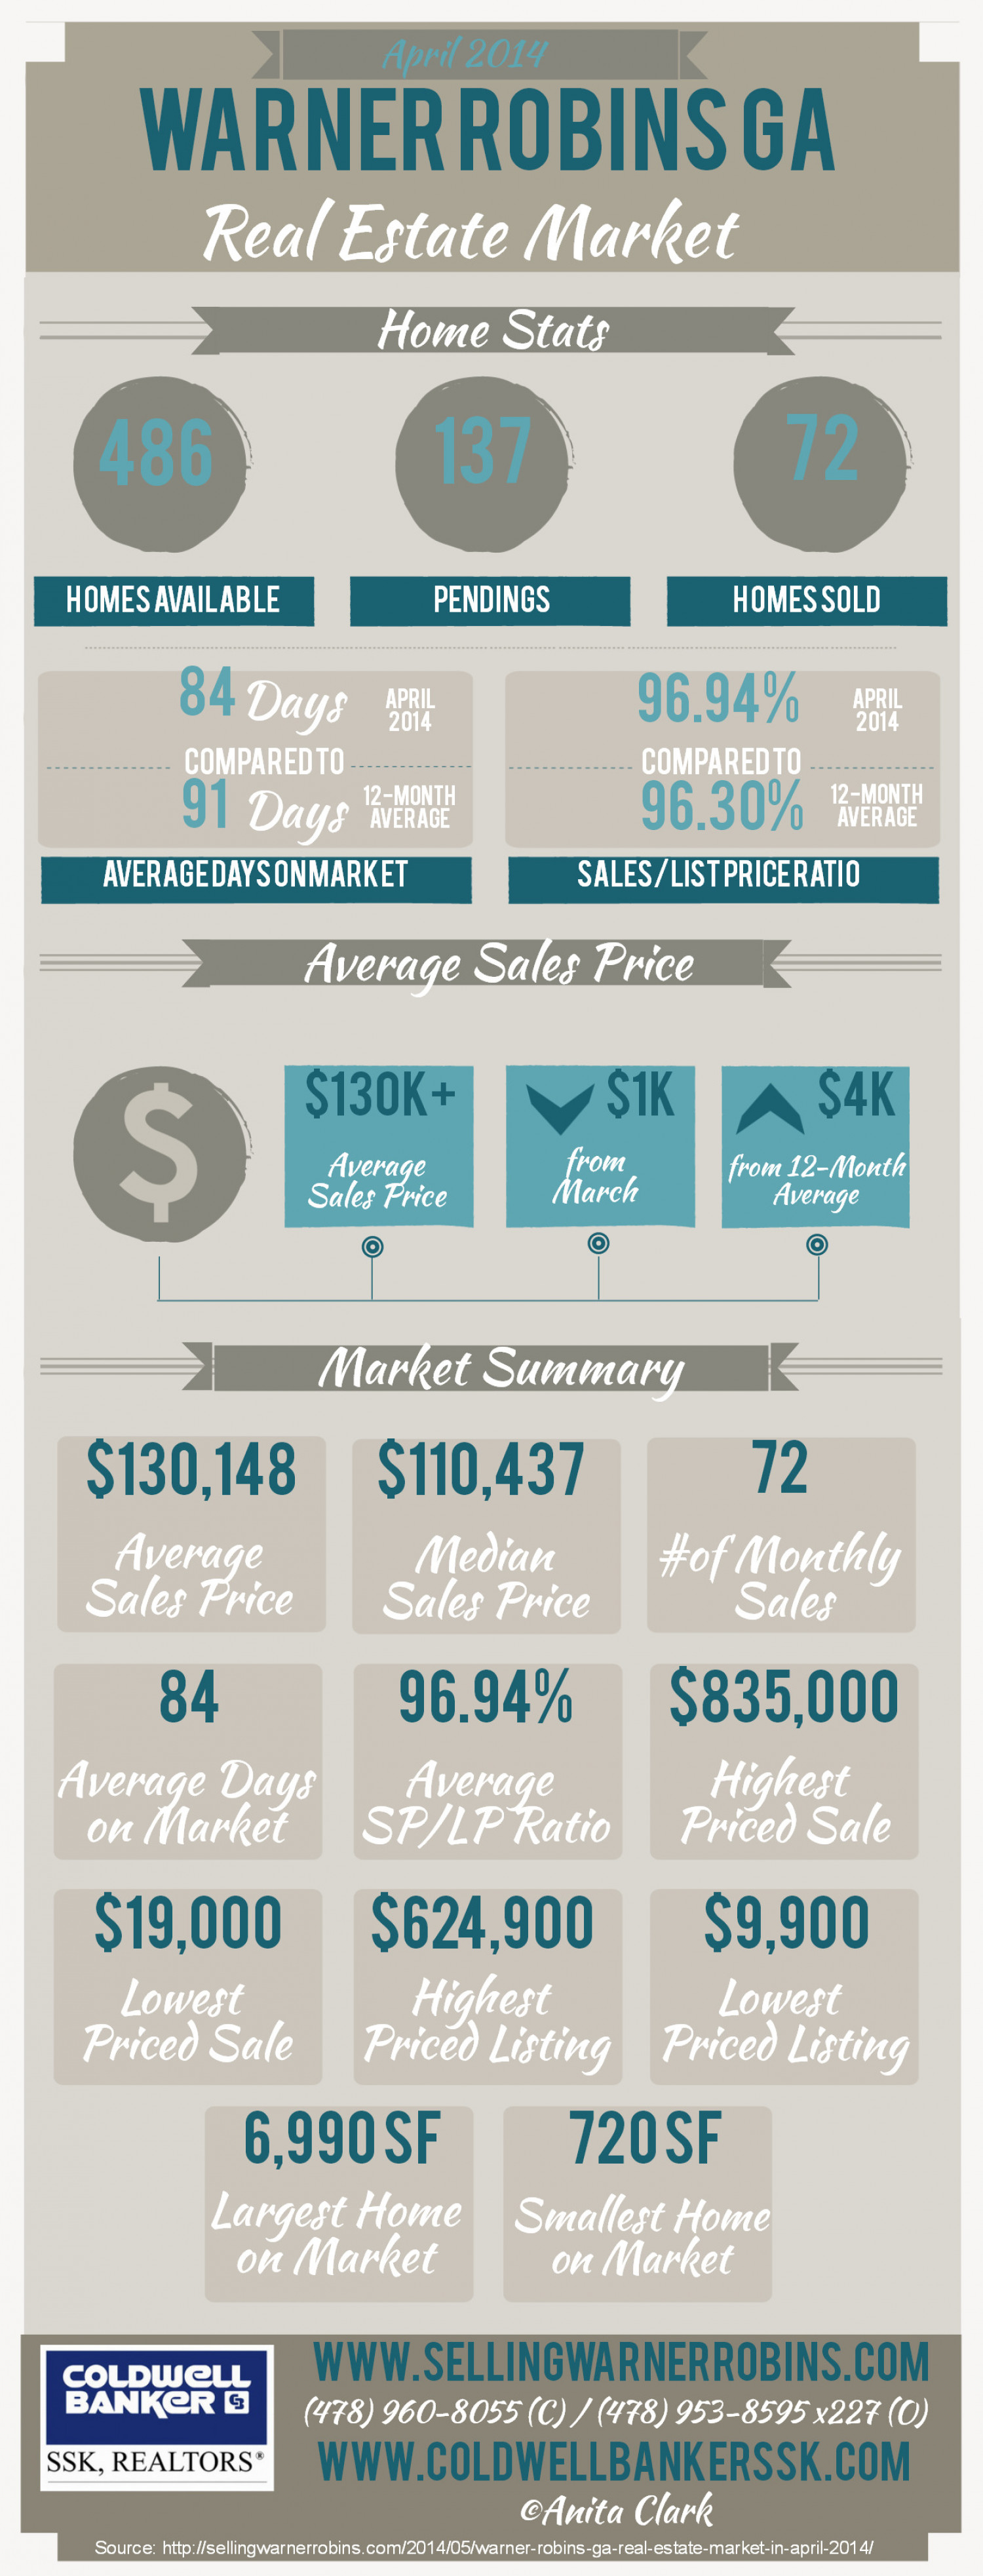 Warner Robins GA Real Estate Market in April 2014 Infographic